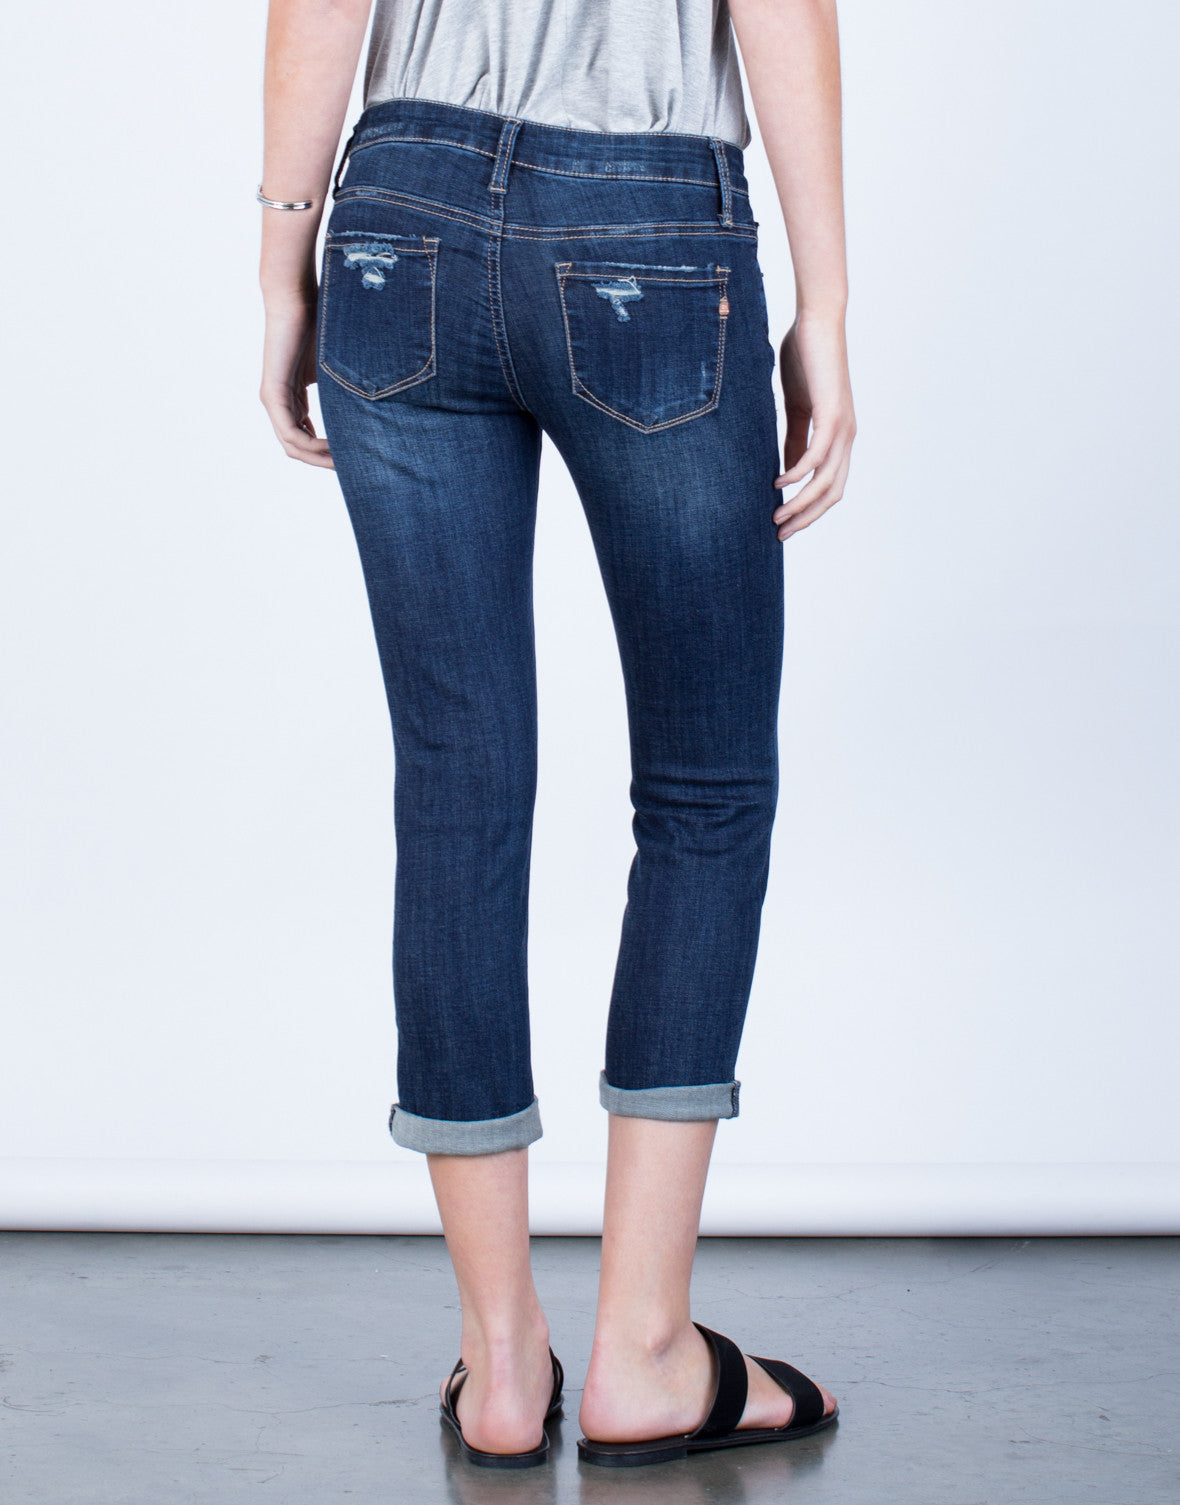 Back View of Slightly Distressed Capri Denim Jeans